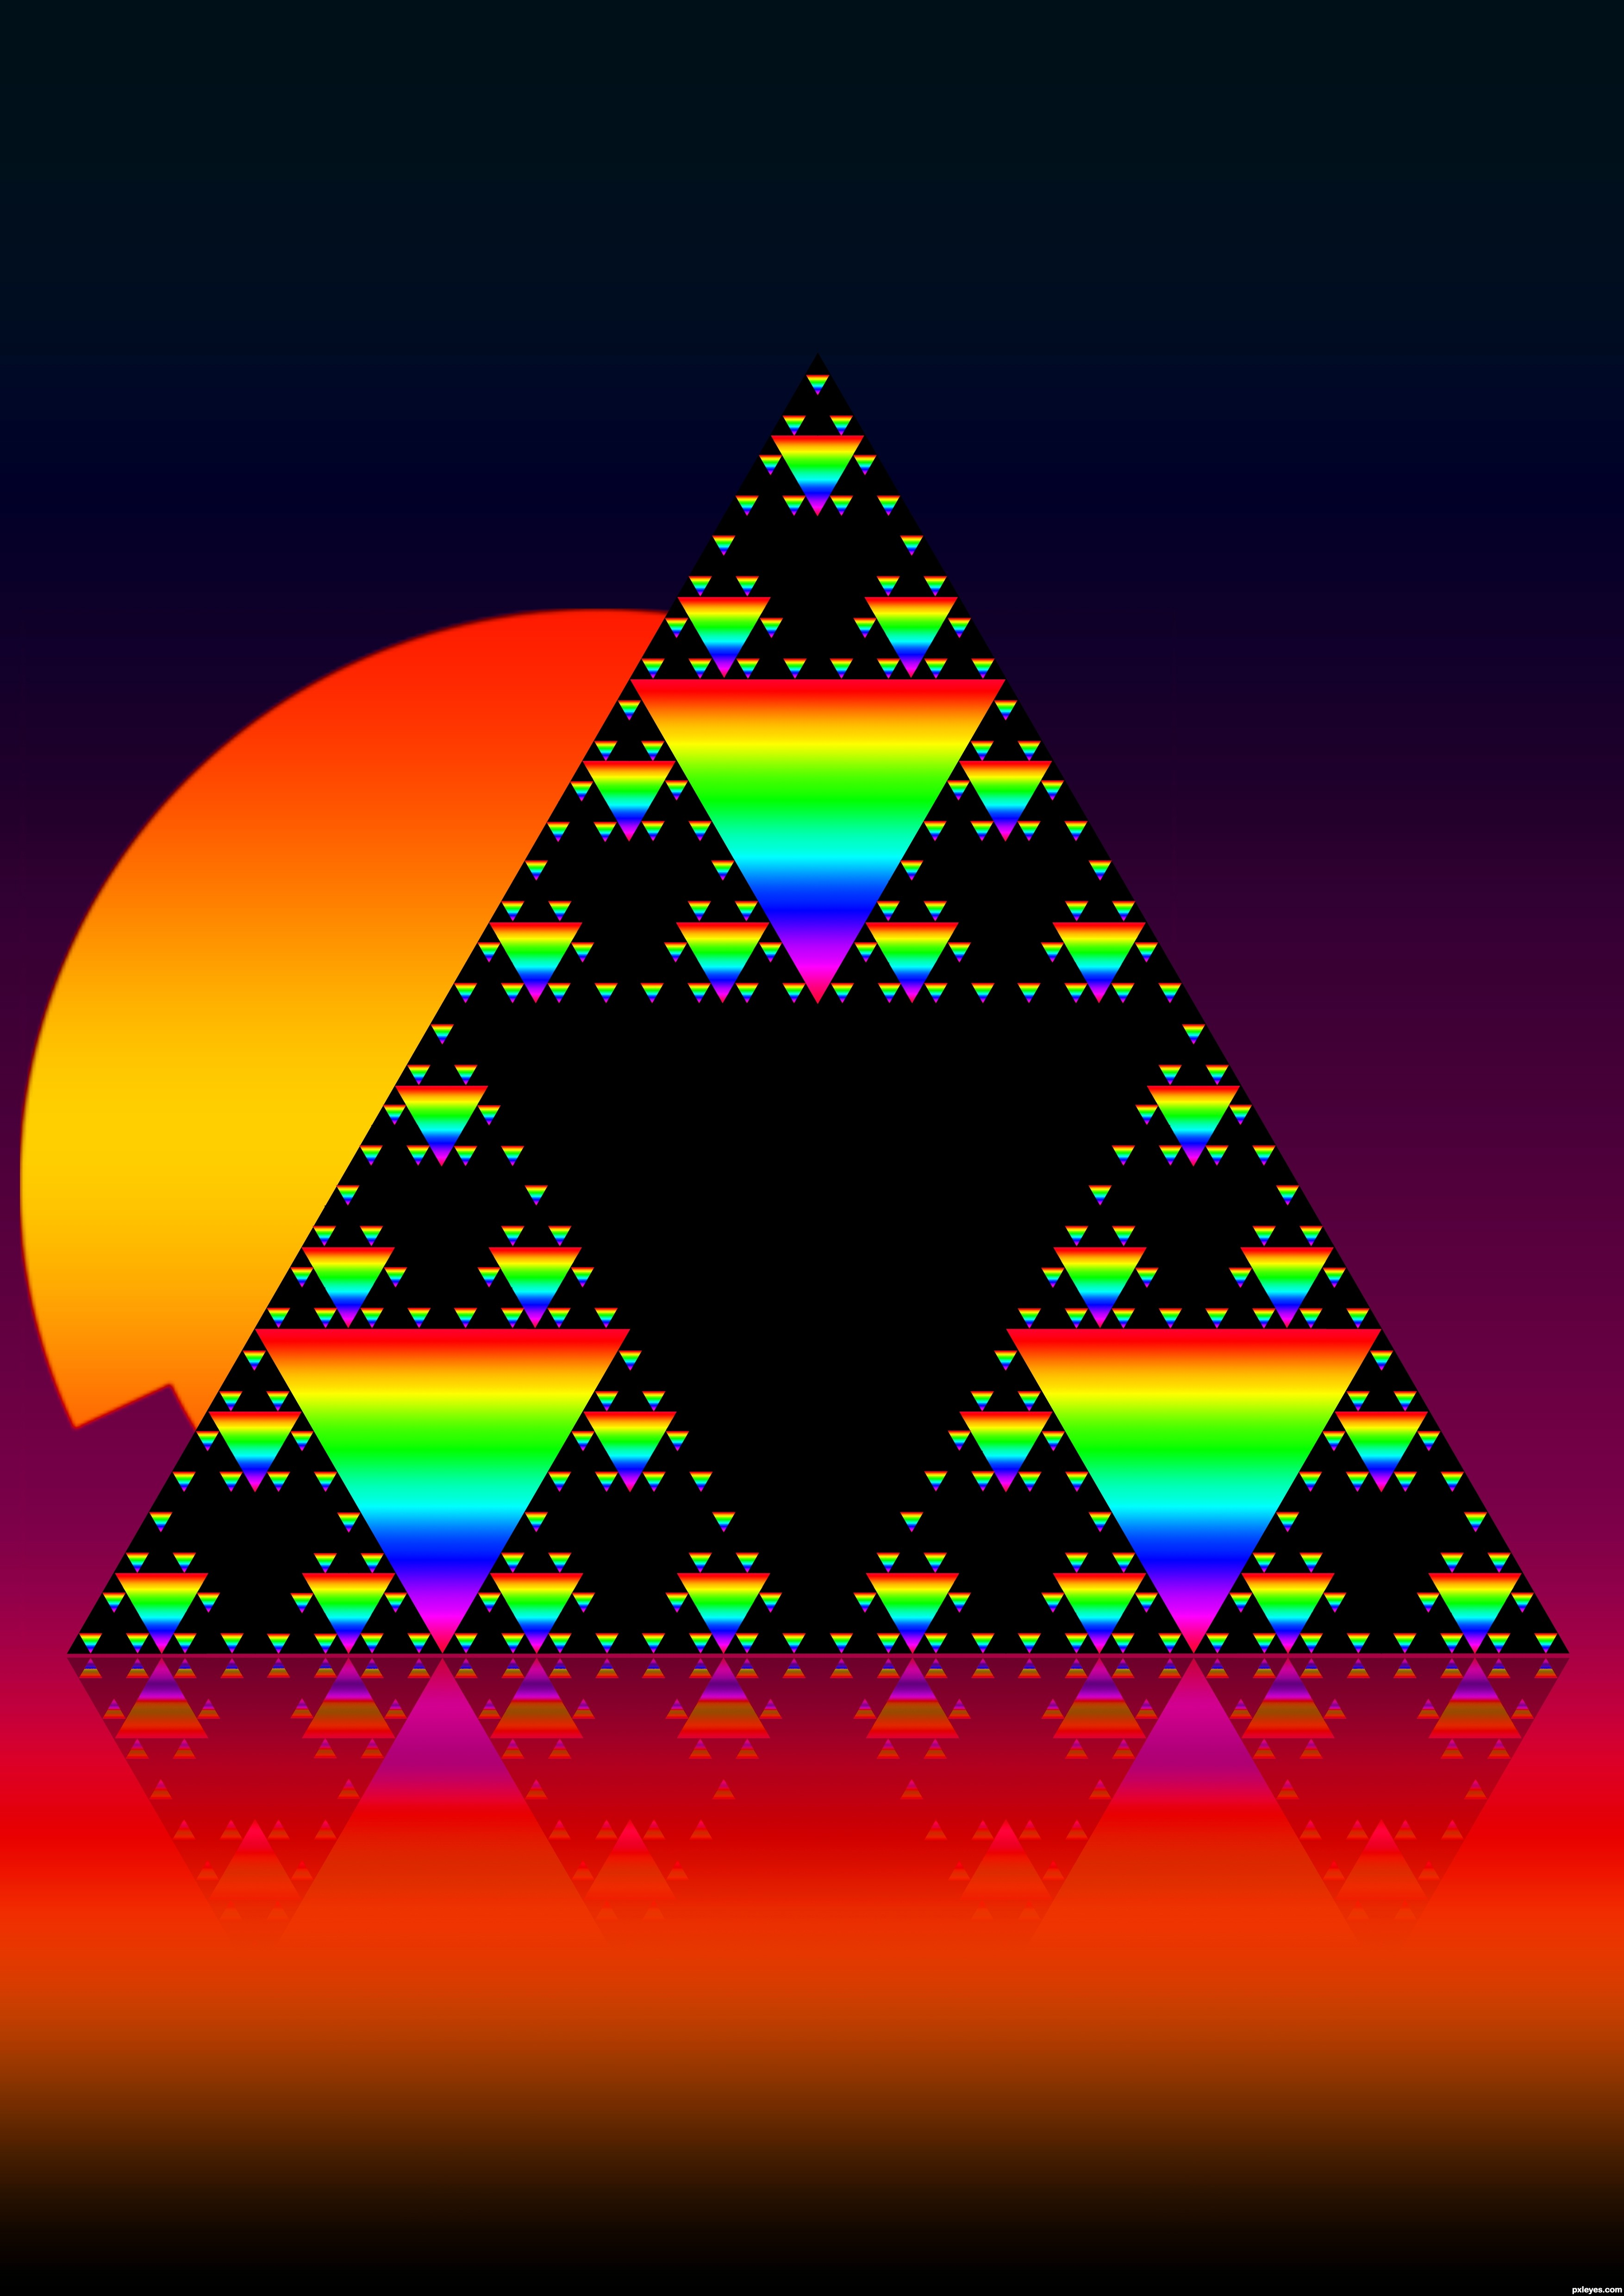 sierpinski u0026 39 s triangle picture  by joellemt for  duplicate frenzy photoshop contest